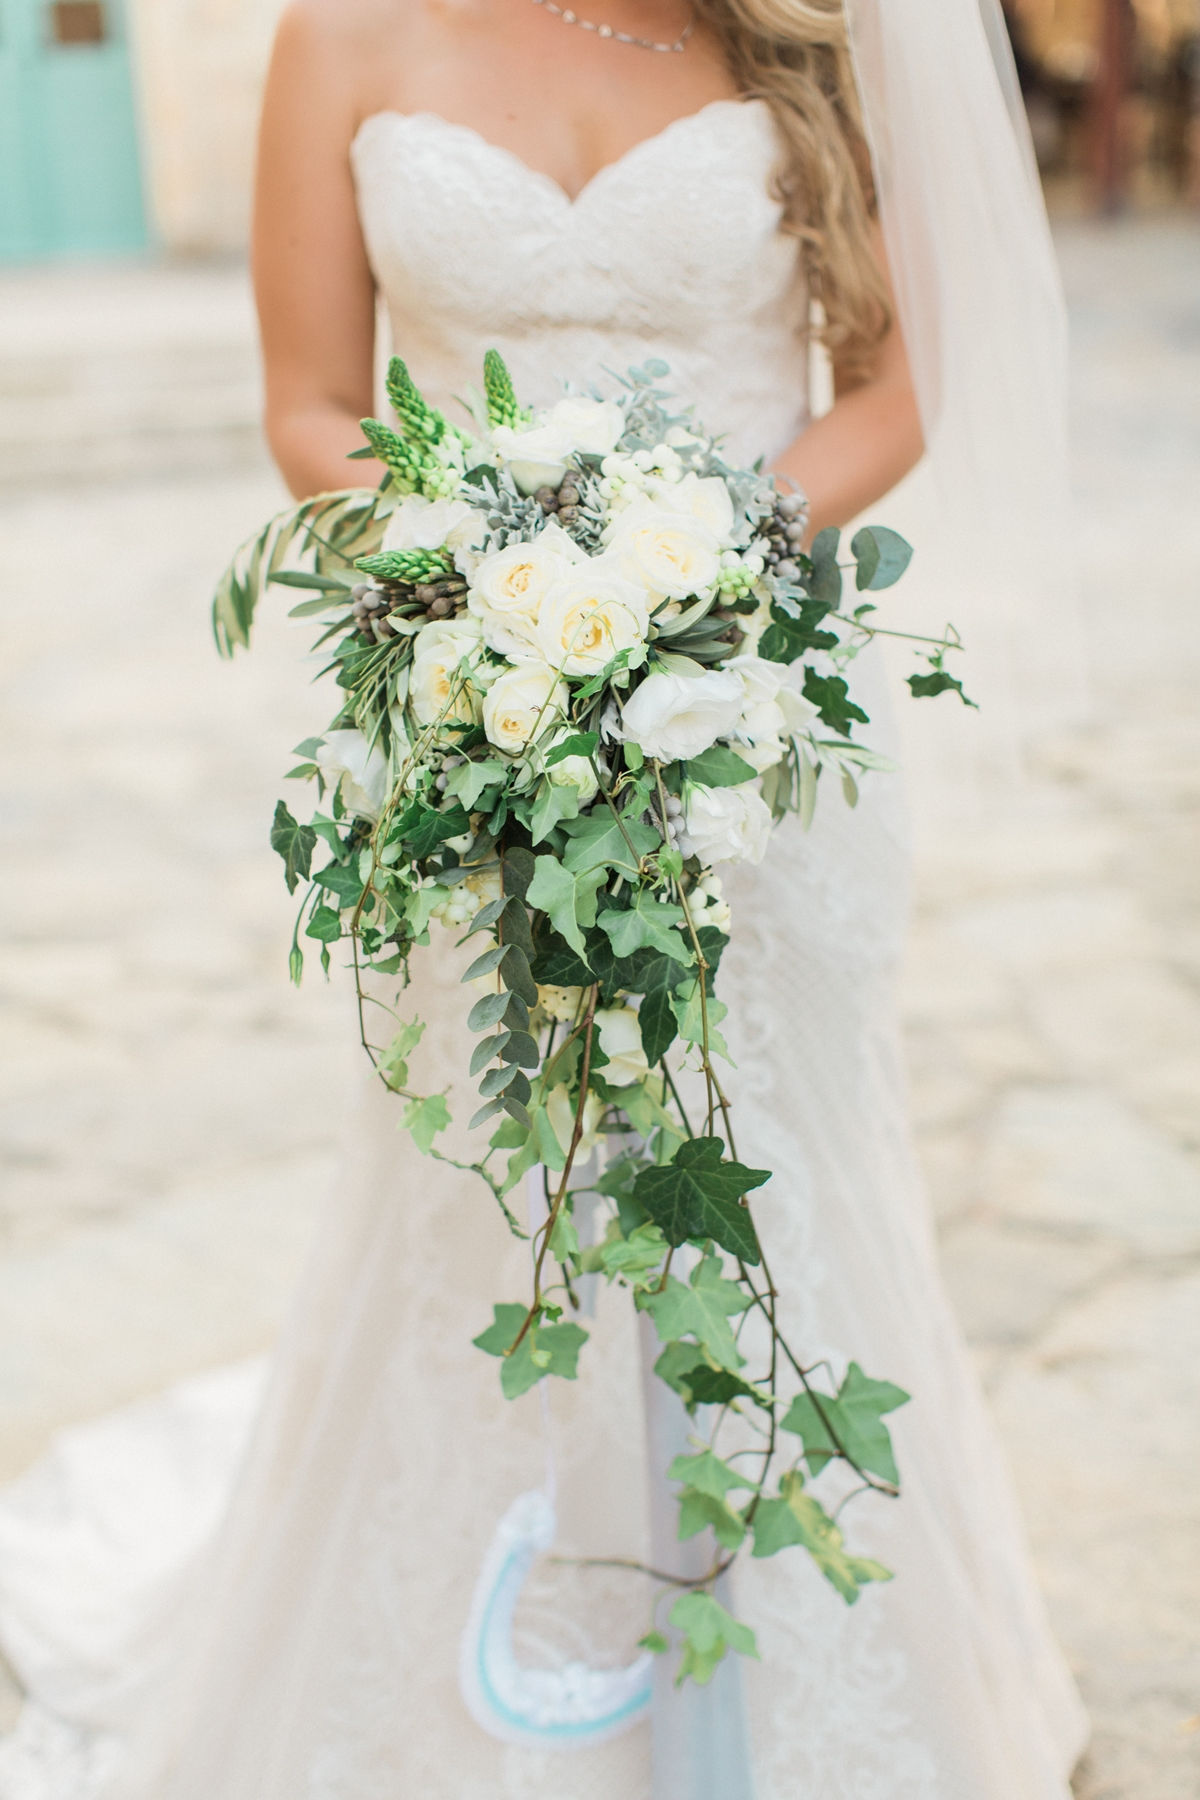 Bridal bouquet with white roses, olive leaves and ivy